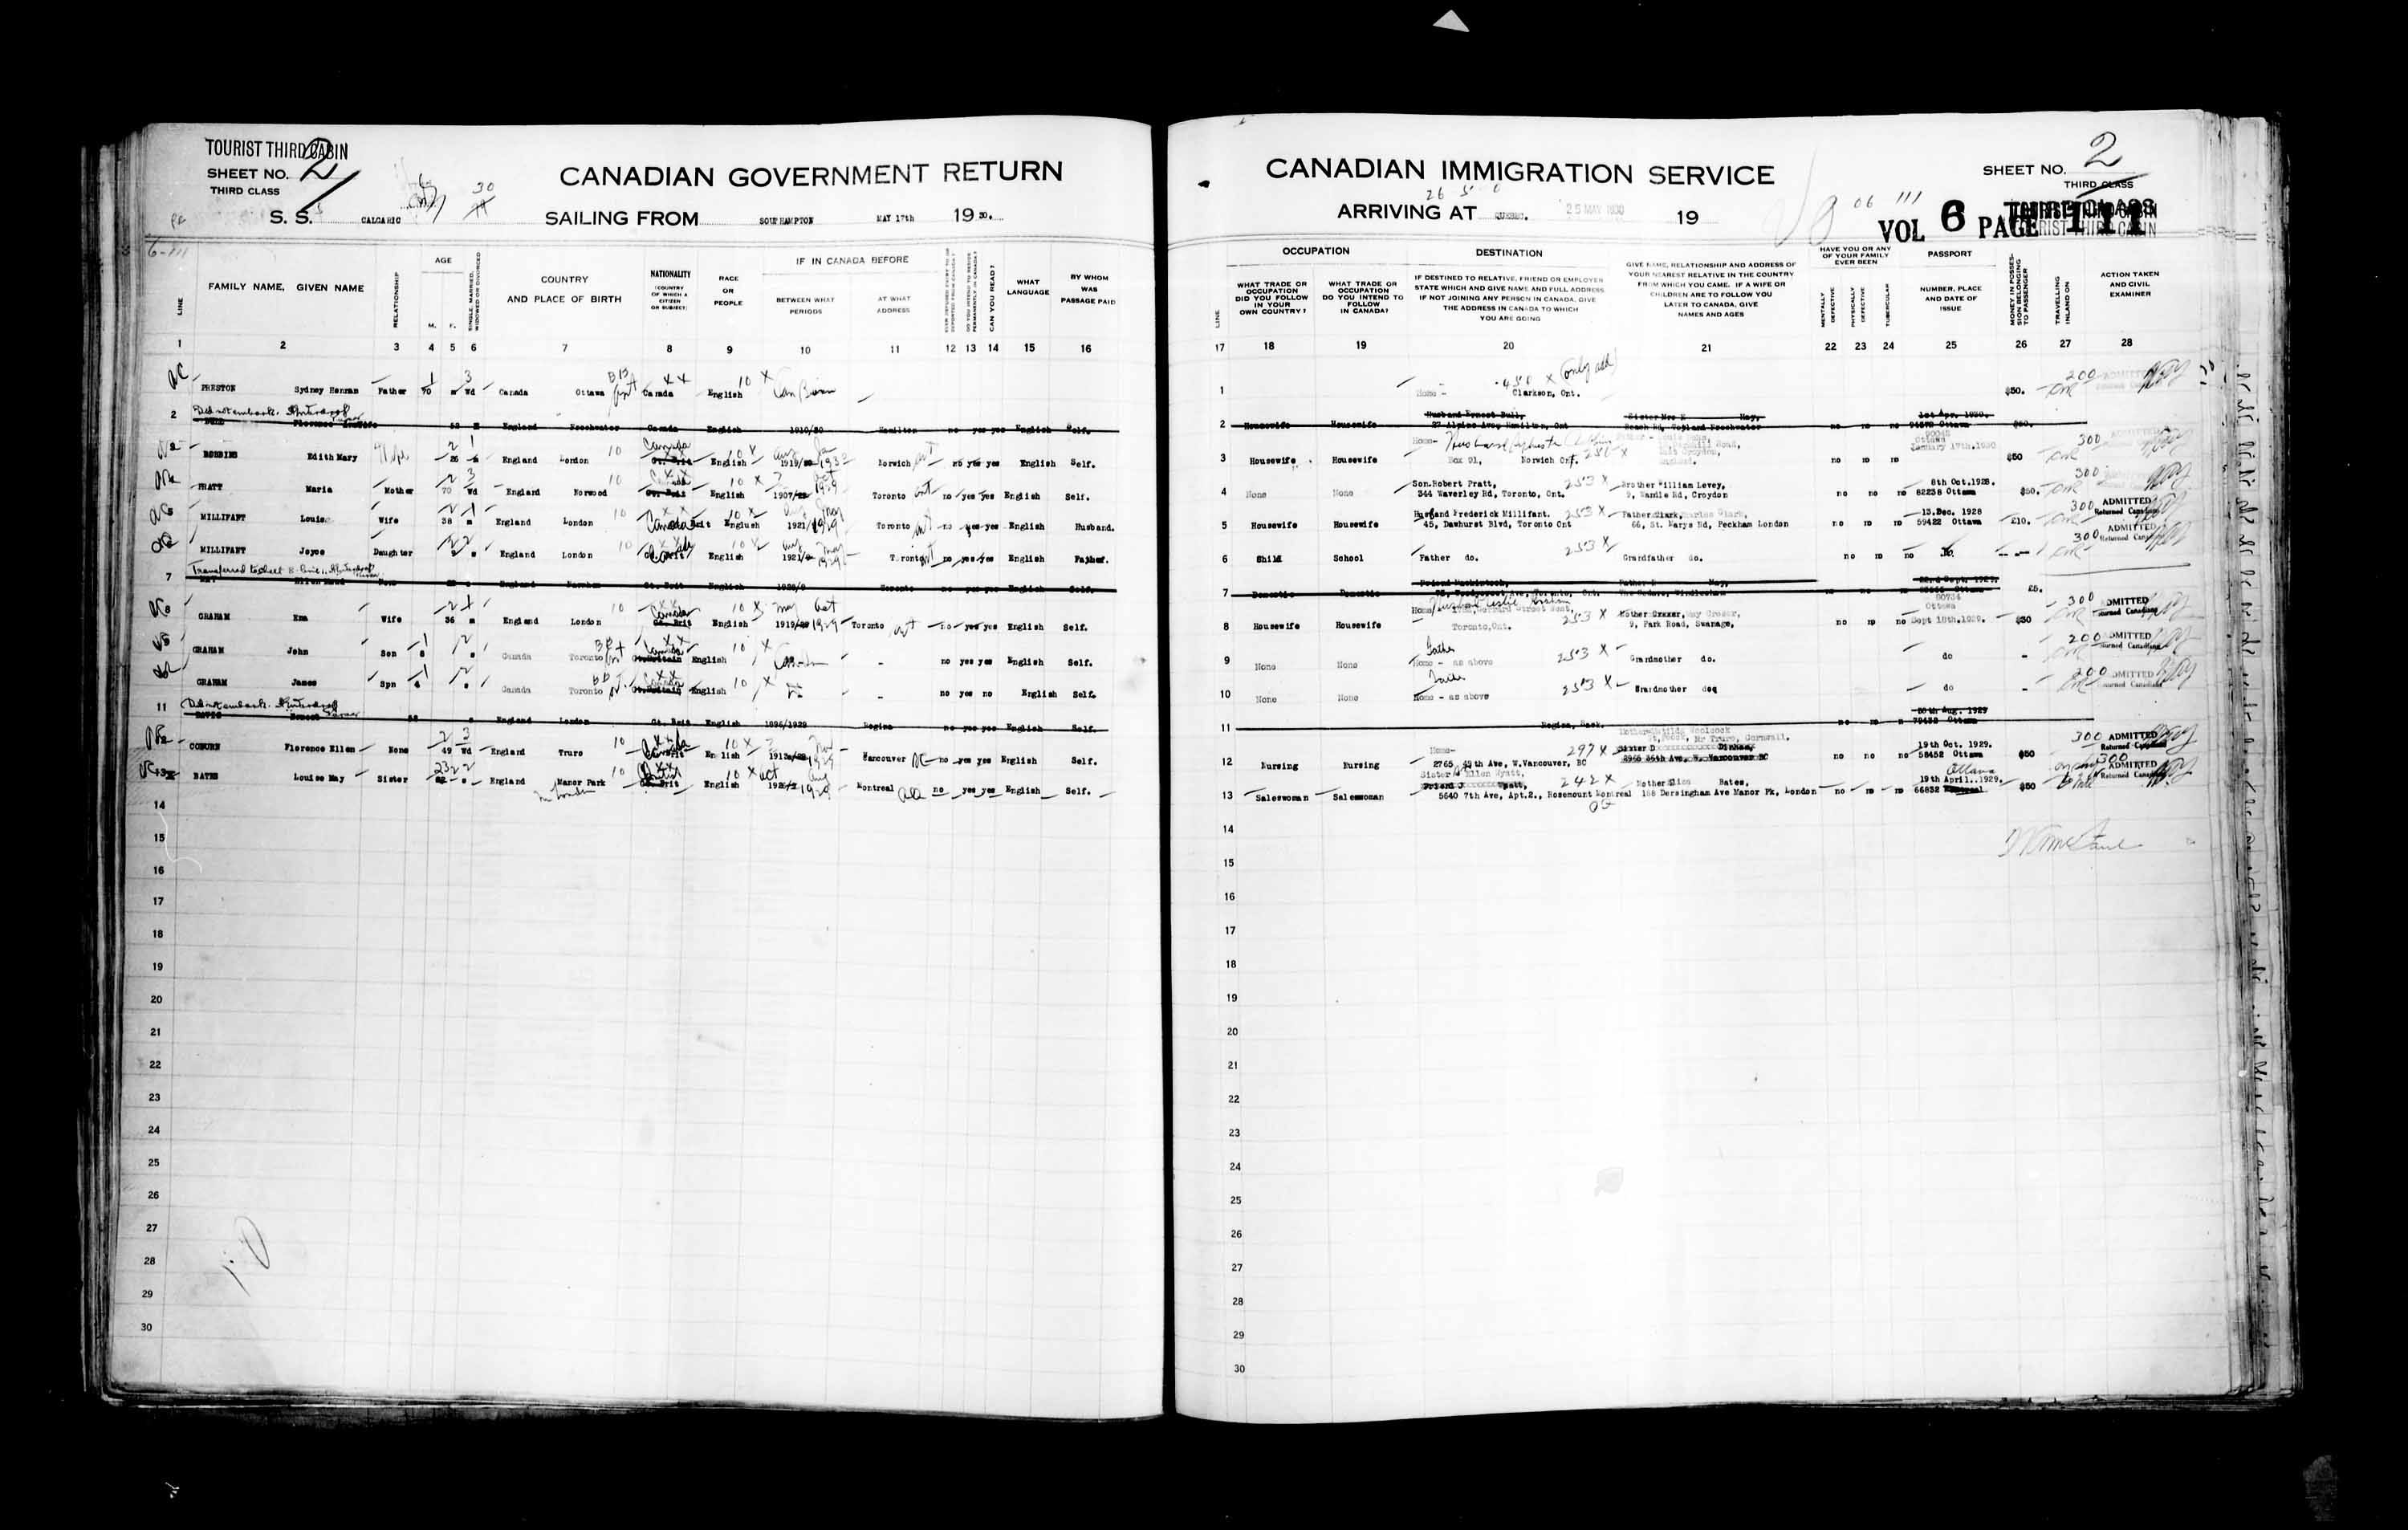 Title: Passenger Lists: Quebec City (1925-1935) - Mikan Number: 134839 - Microform: t-14764